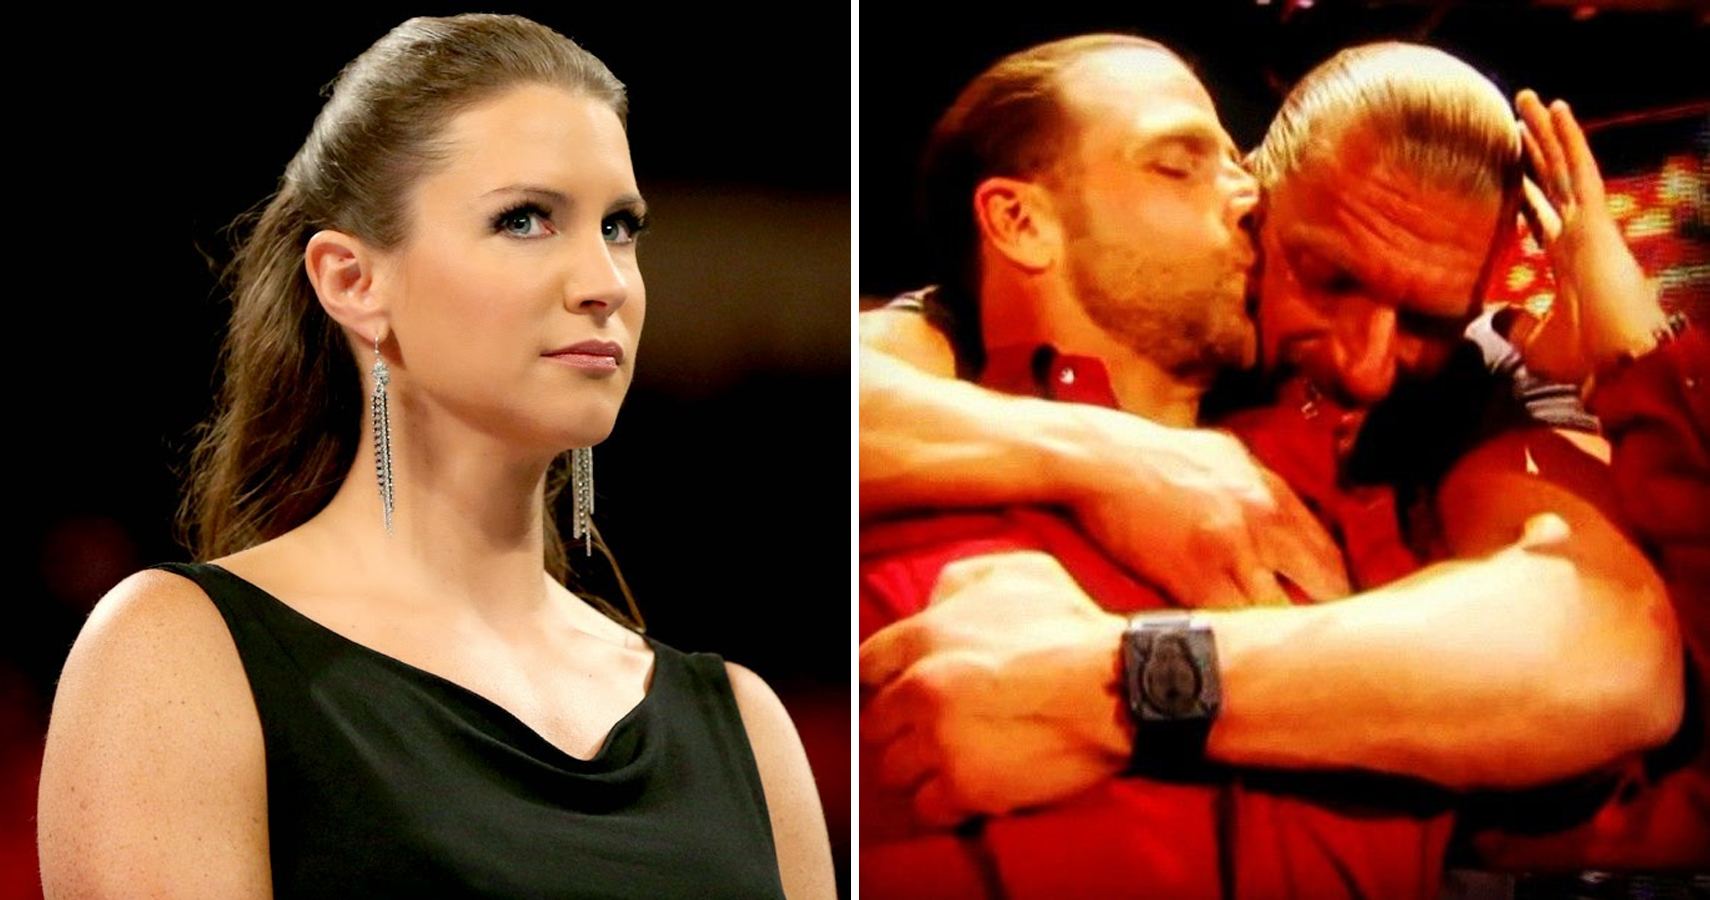 Stephanie McMahon once thought Triple H was gay with Shawn